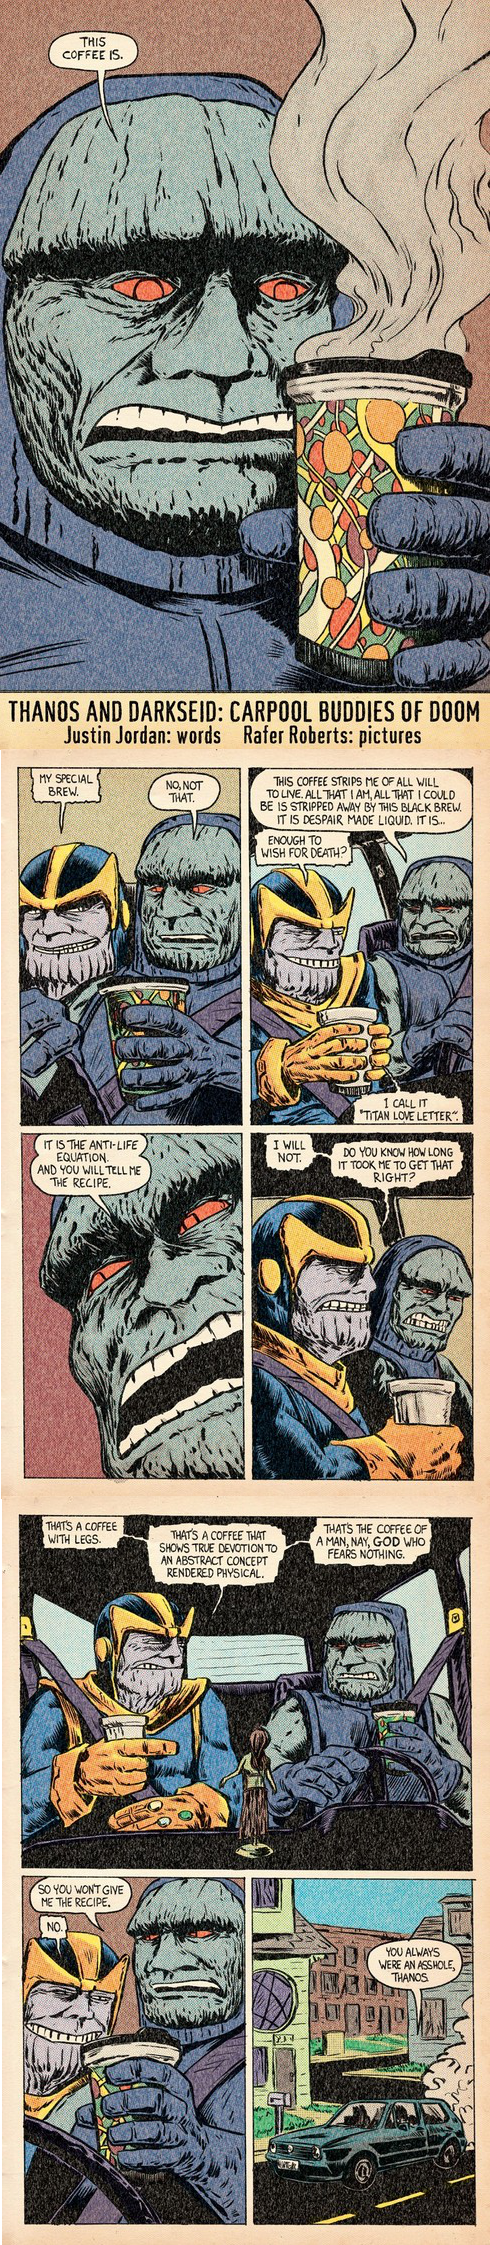 thanos off the page darkseid superheroes - 7742703872